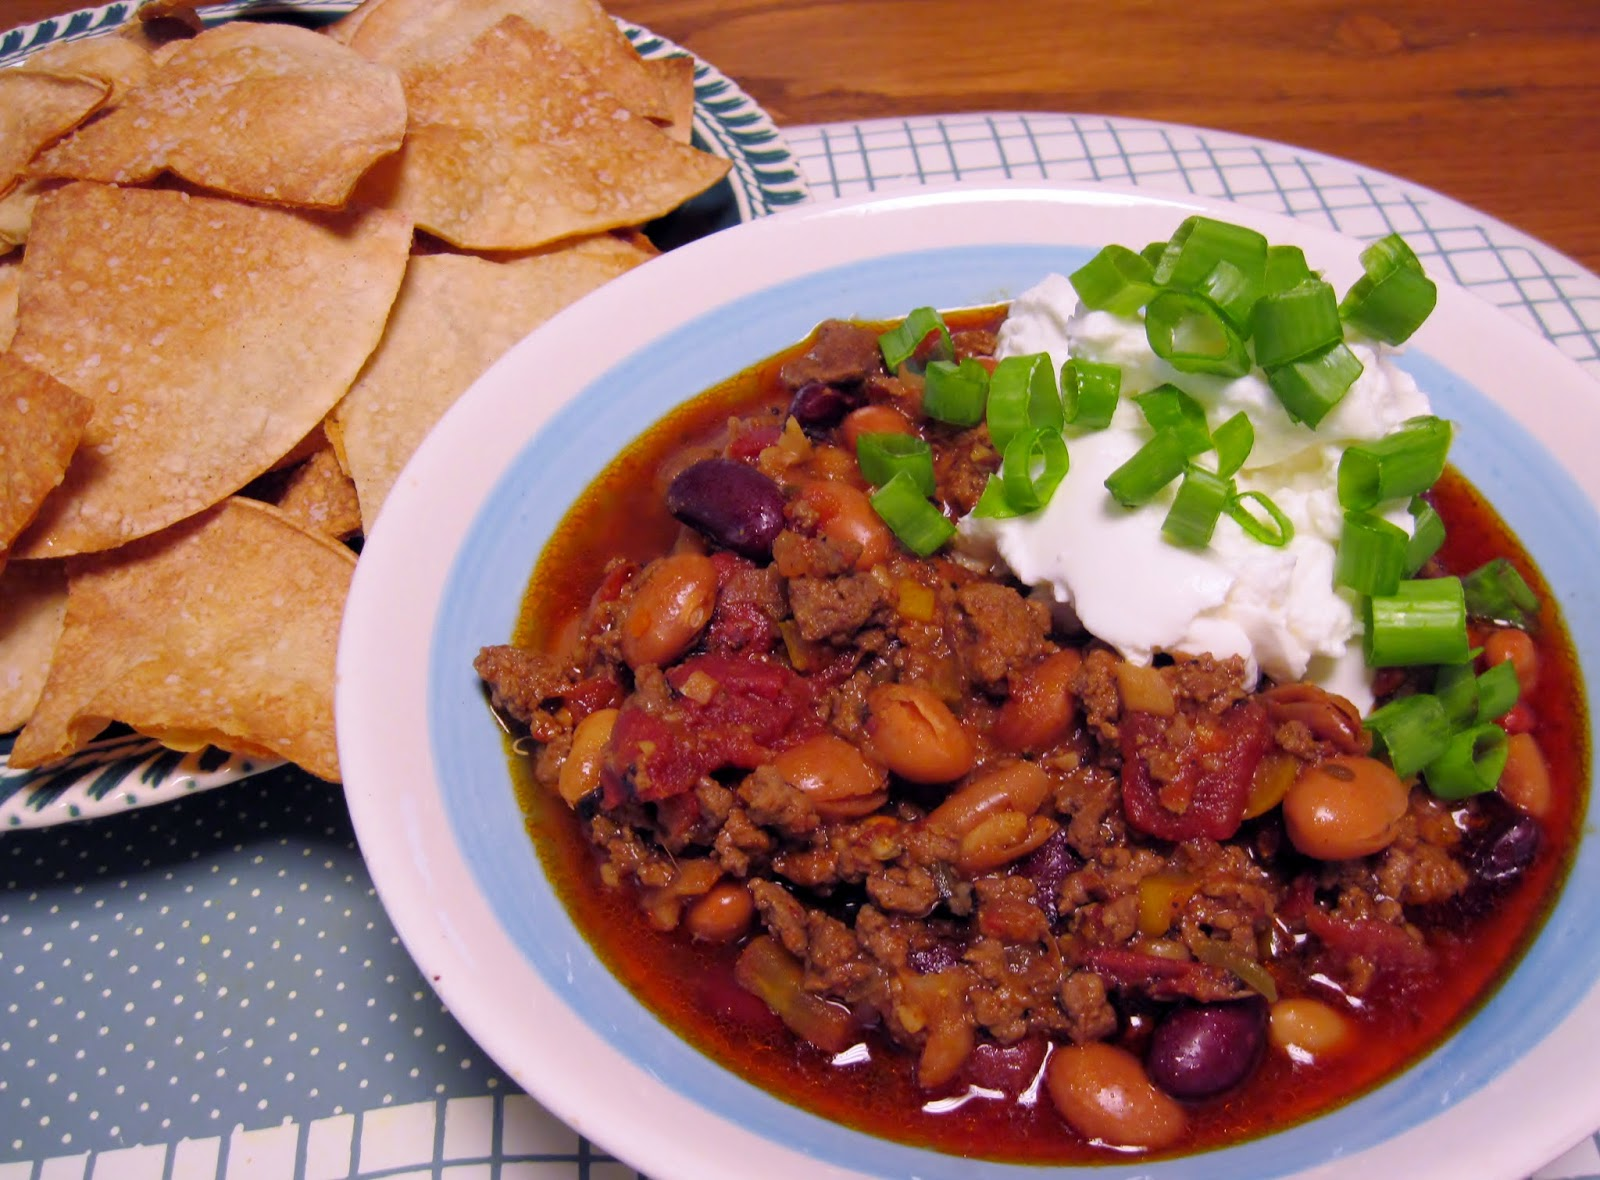 Five-alarm chili recipe